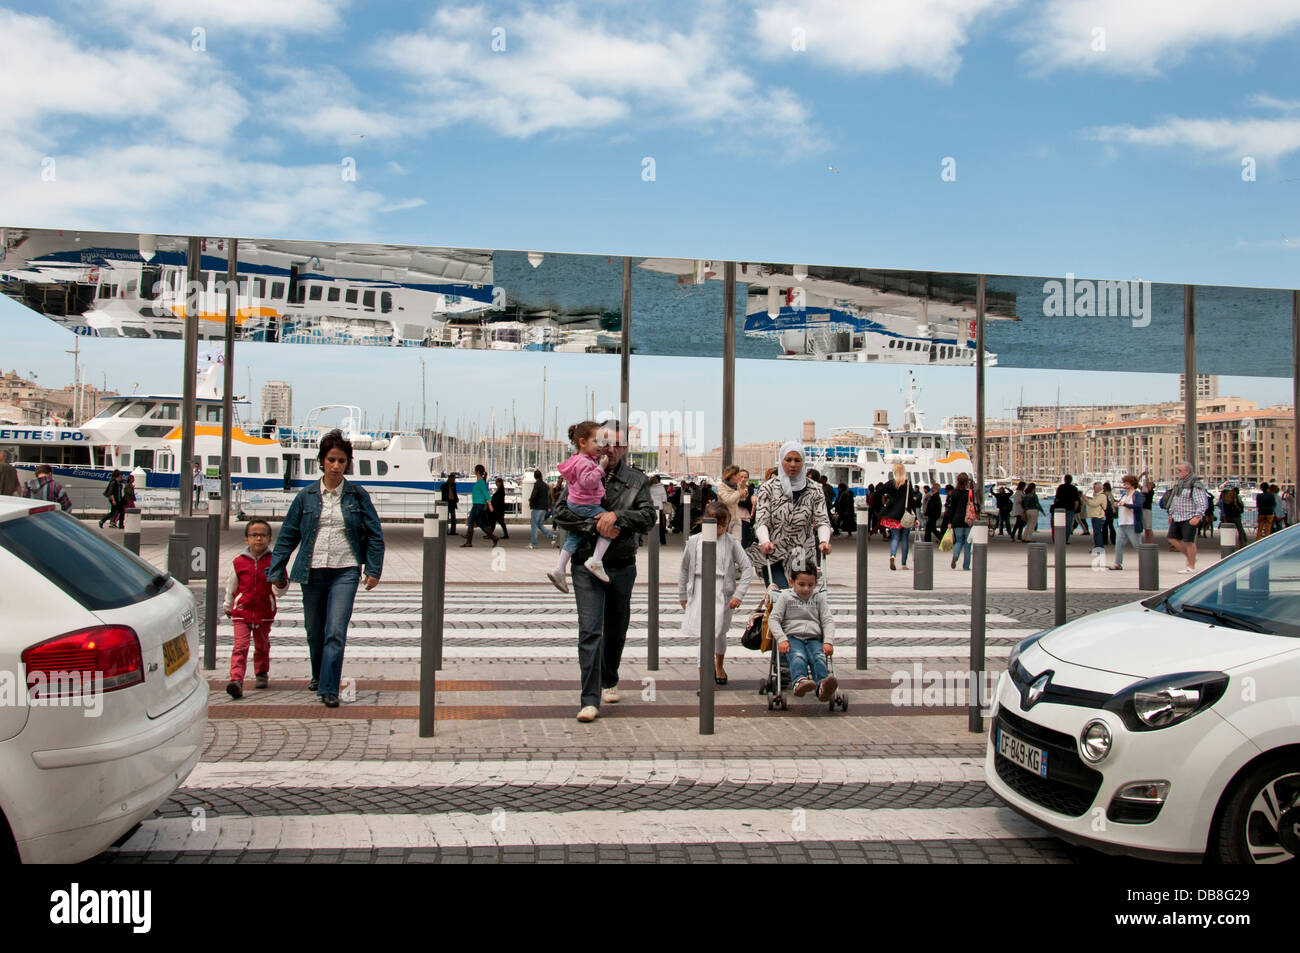 Reflections in Norman Foster Canopy on Quai des Belges Old Vieux  Port Marseilles France - Stock Image